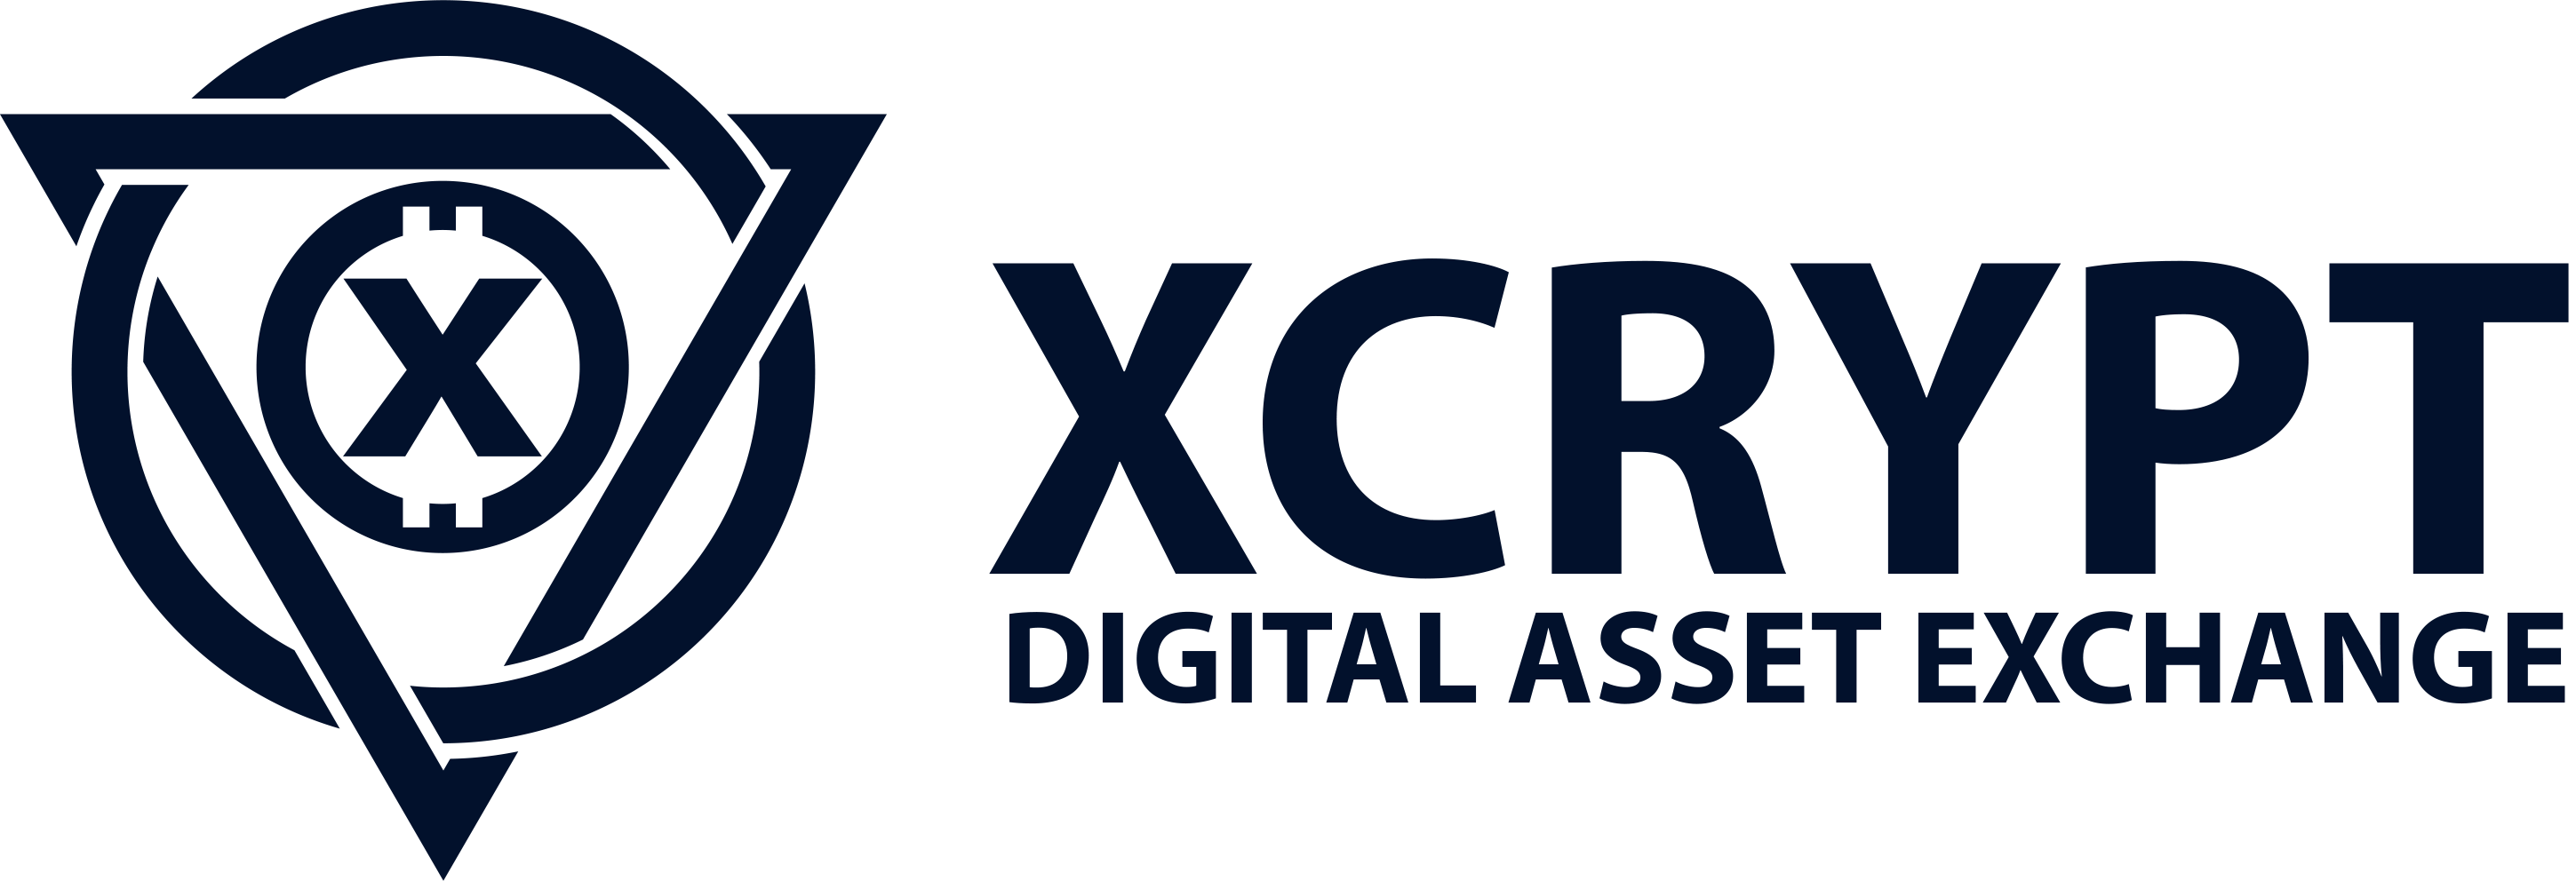 xCrypt Help Center home page